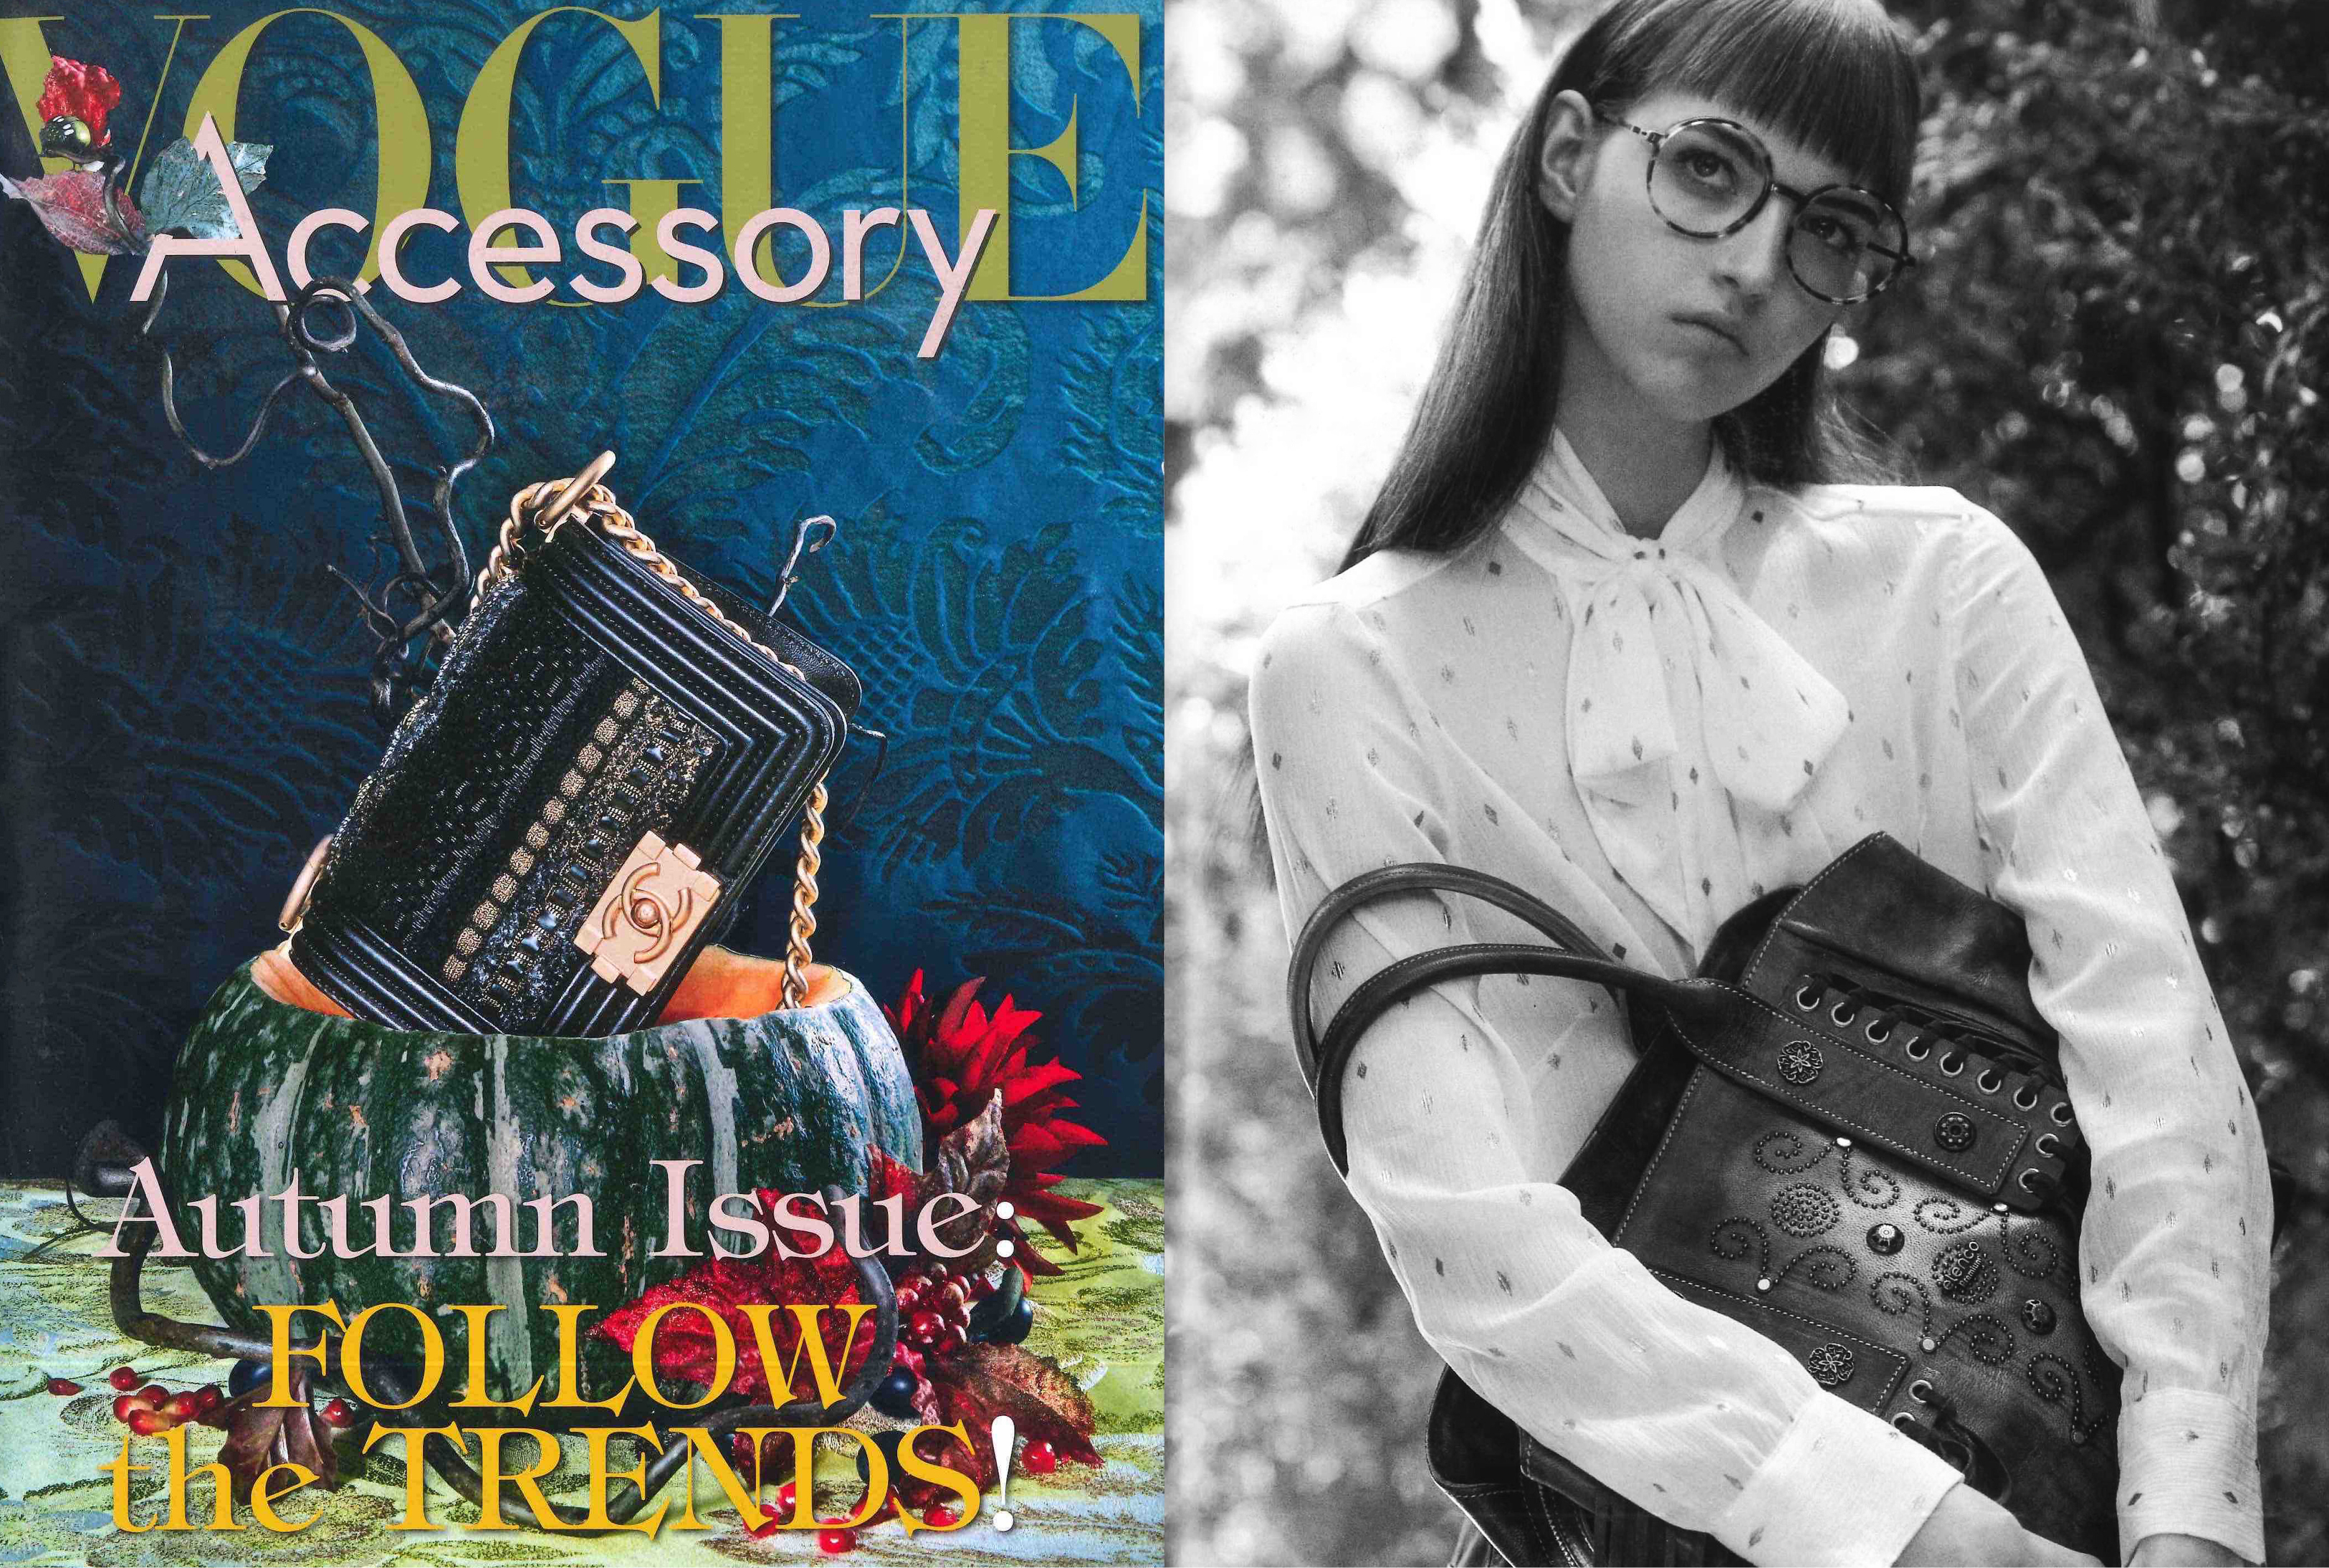 MYKITA LITE glasses ANANA featured in Vogue Accessory Italy